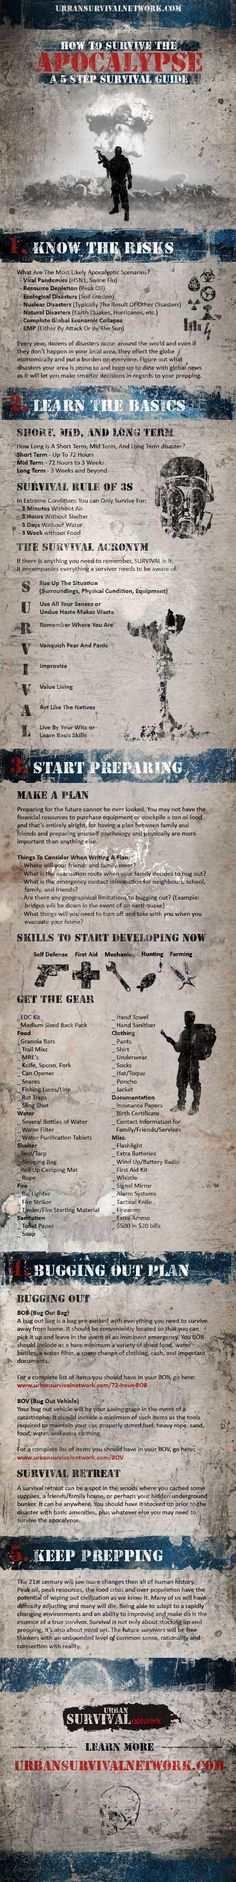 Survival Skills: Survival Info-graphics. Useful tips, hacks, ideas, and information for survival prepper. Survival Gear and Prepping Ideas | Survival Life | http://survivallife.com/2014/03/03/survival-infographics/